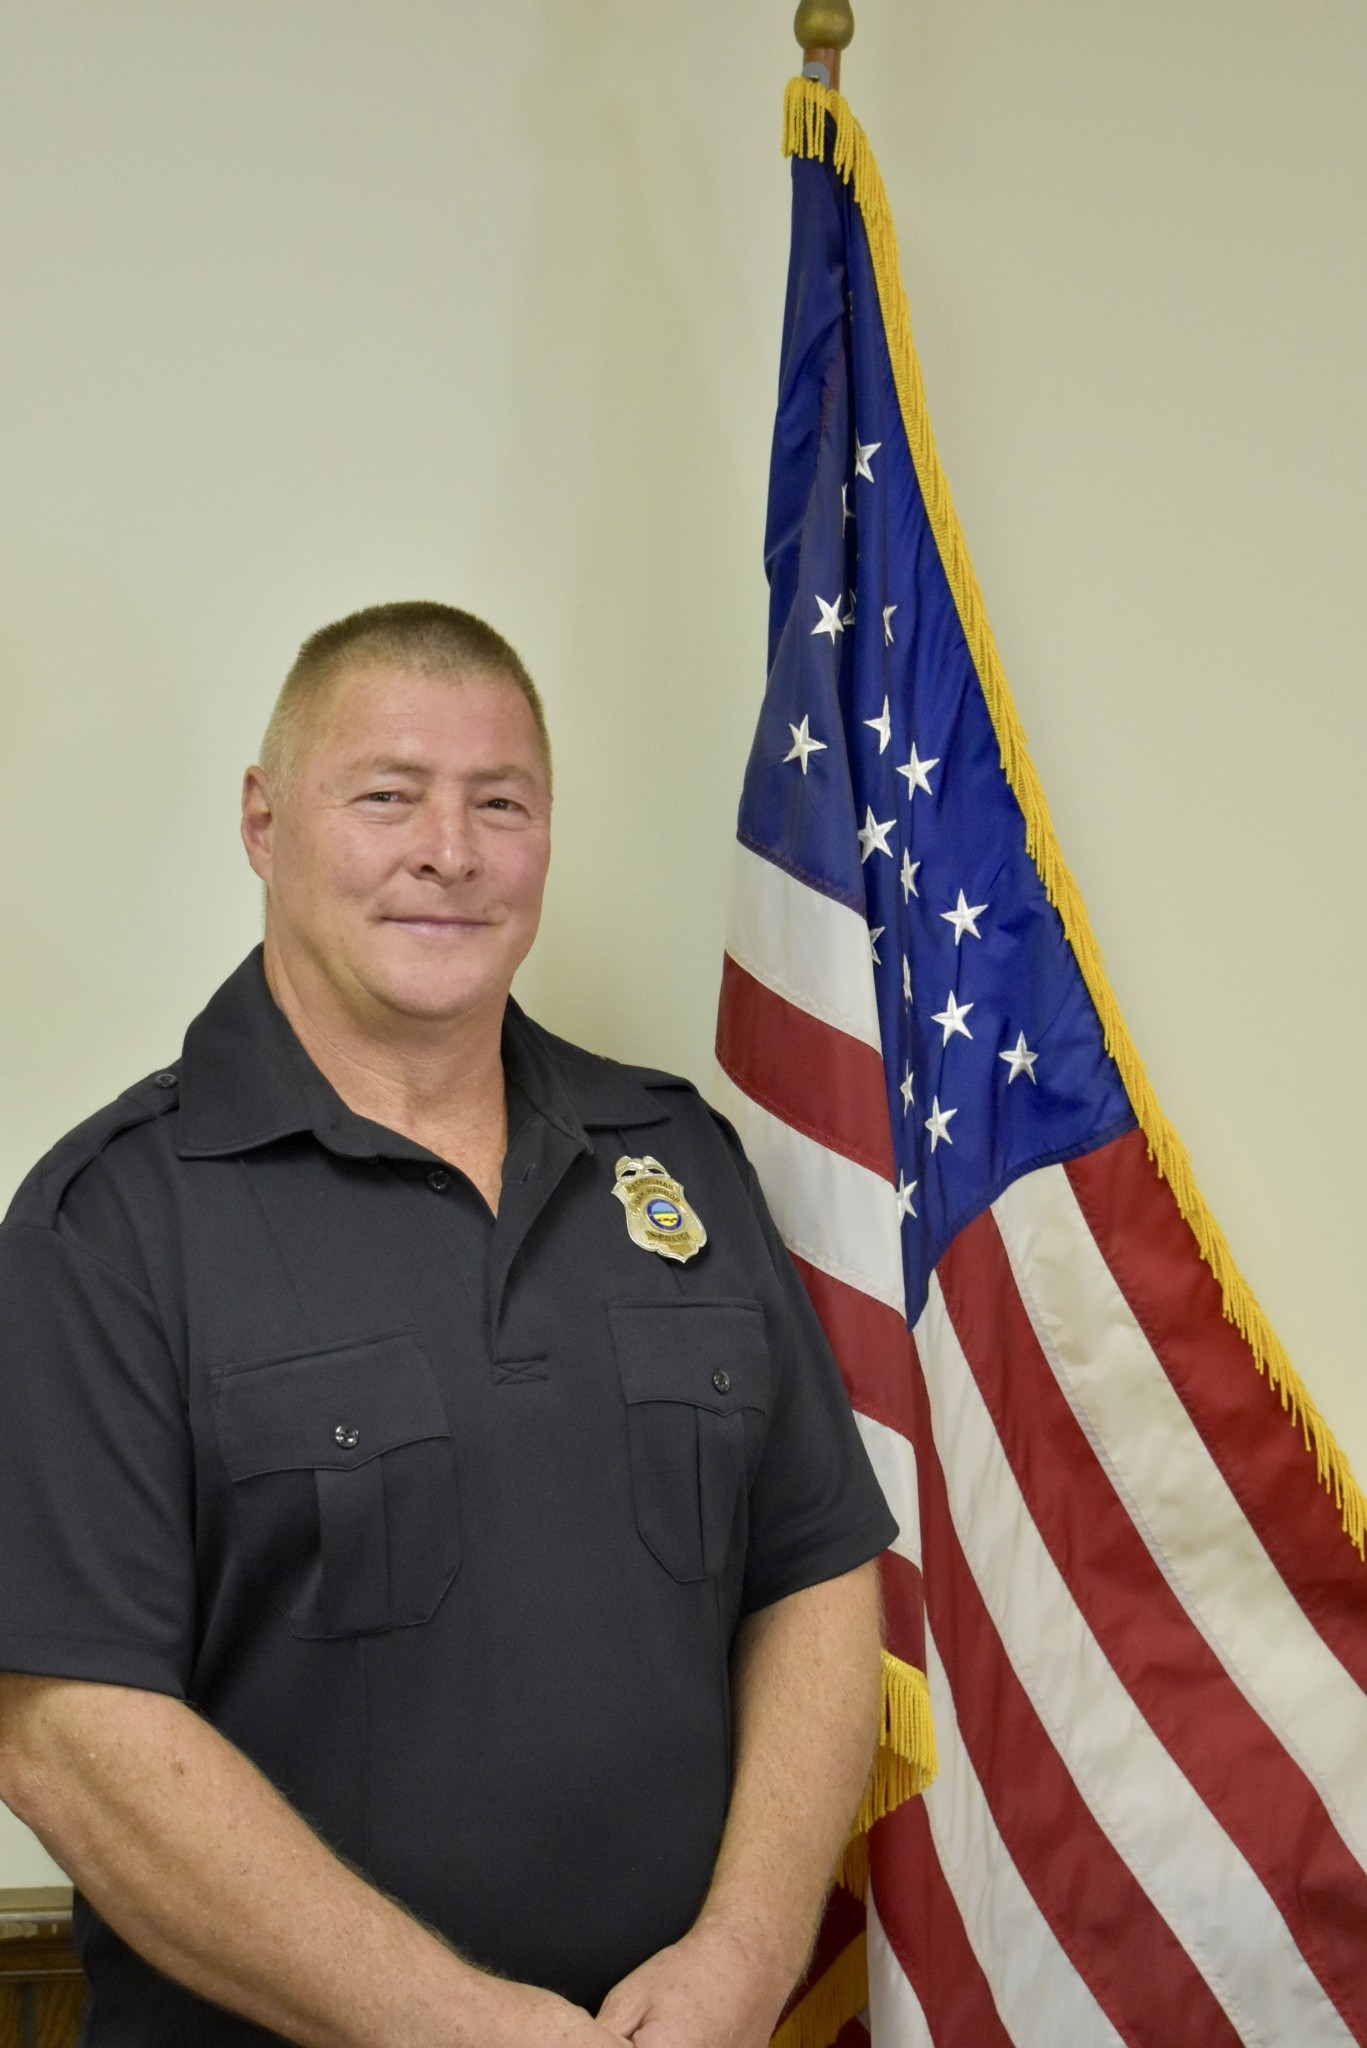 Retired Ottawa County Deputy Dean Hammer is serving under the Oak Harbor Police Department as the new Student Resource Officer (SRO) for Oak Harbor Middle School and R.C. Waters Elementary in the Benton-Carroll-Salem School District. (Submitted photo)